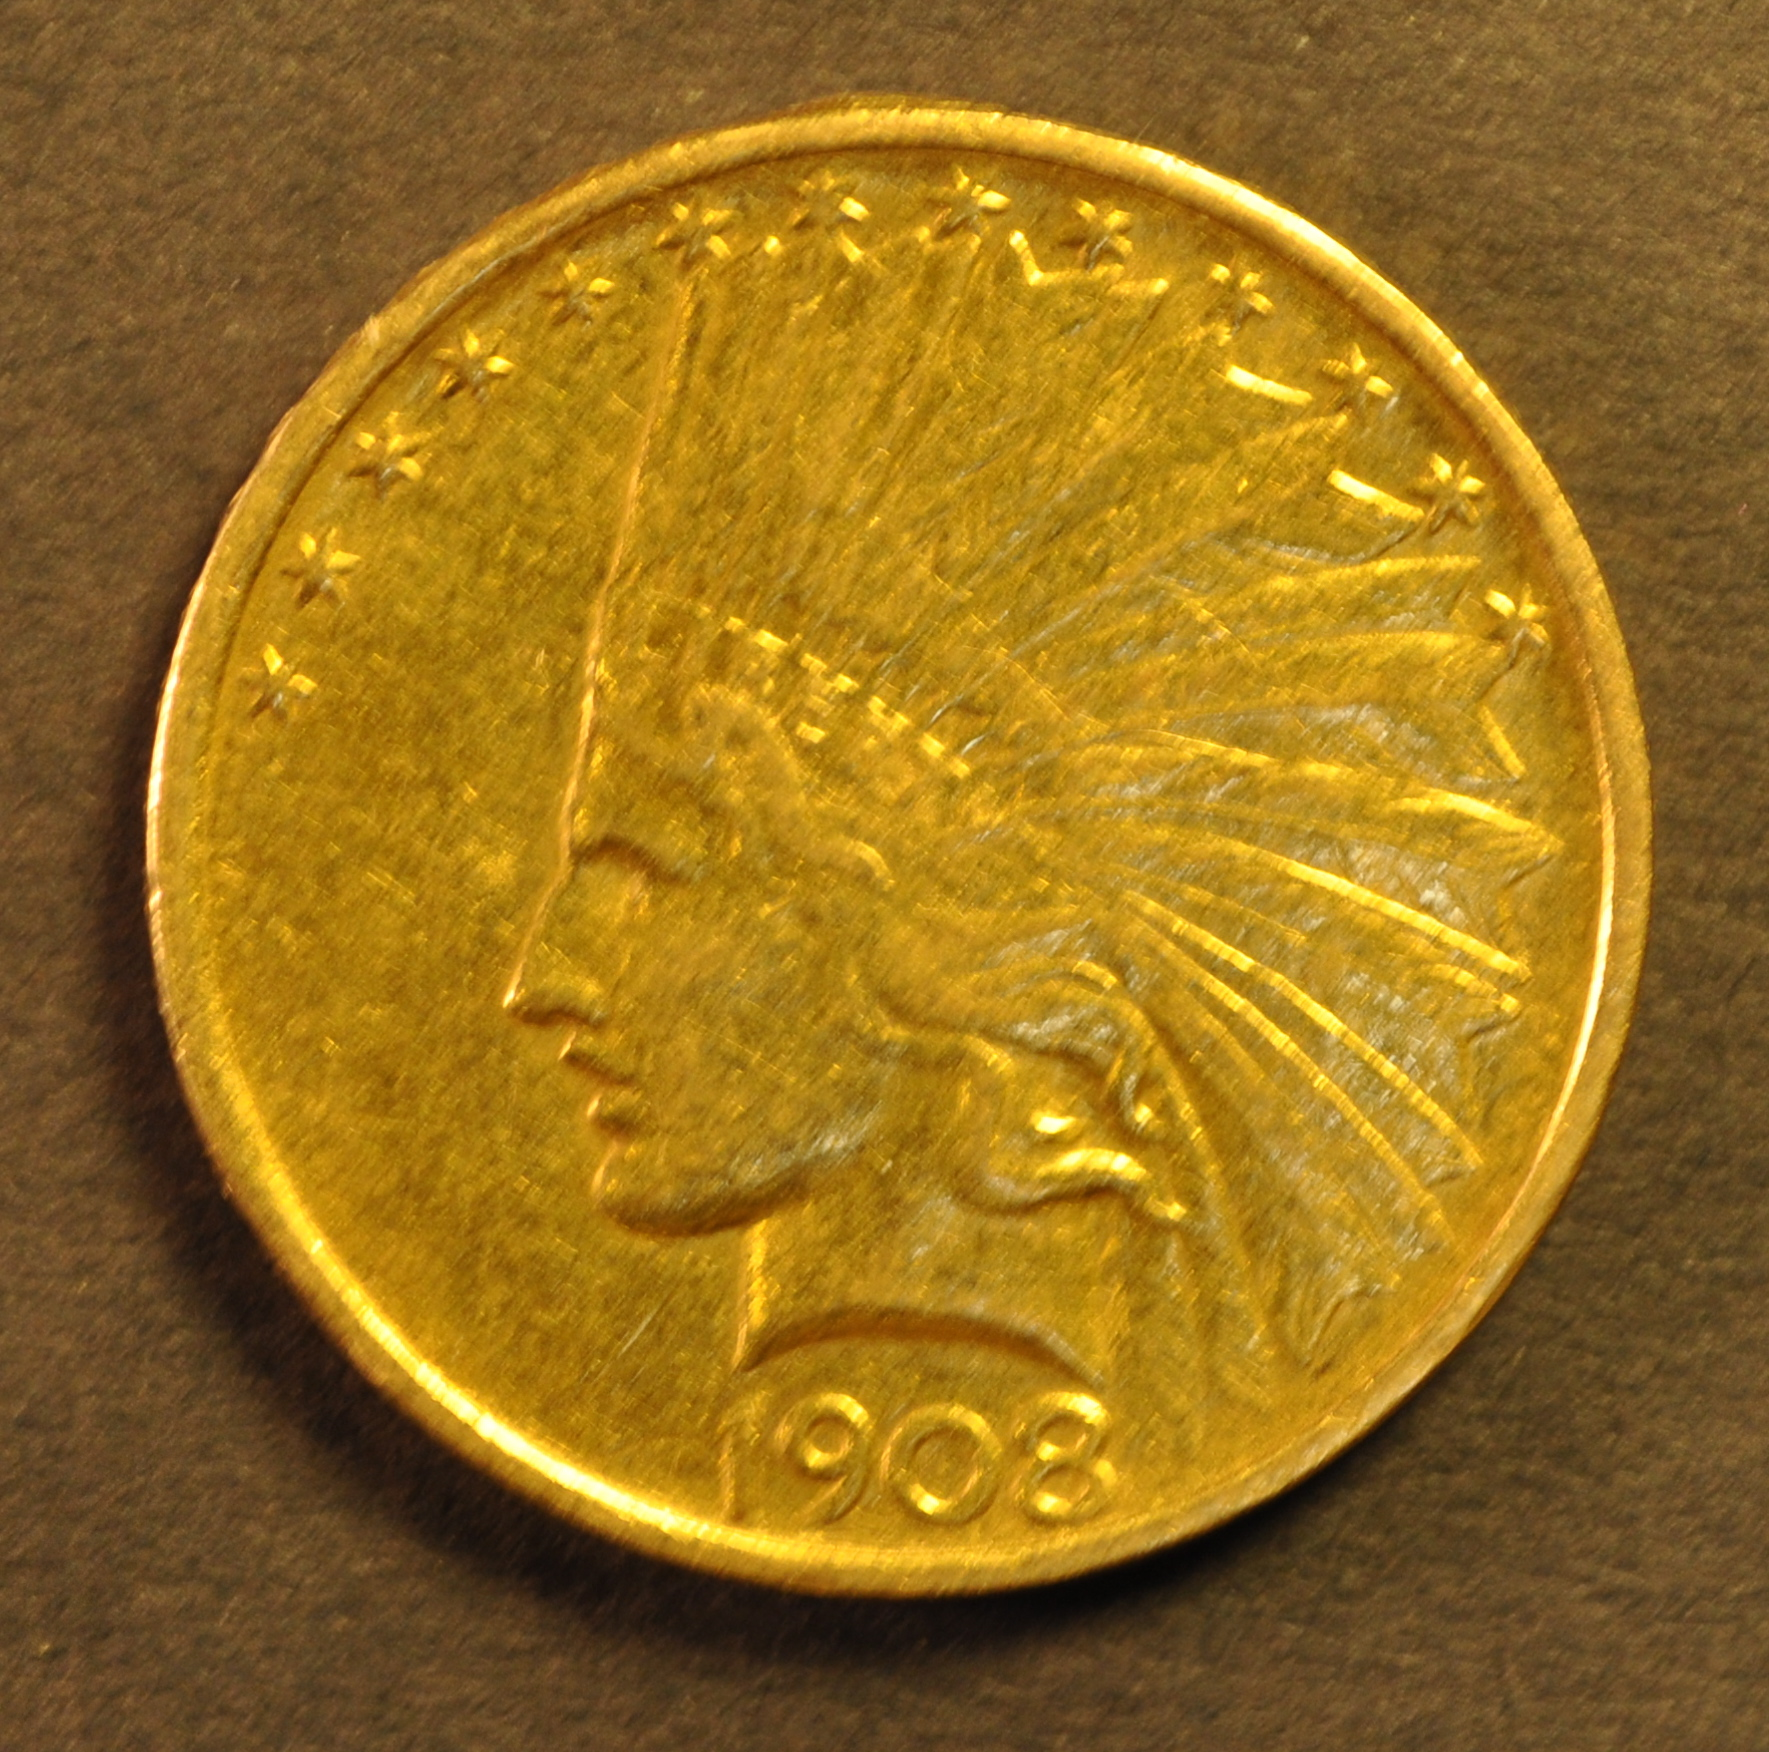 USA 1908 Indian head $10